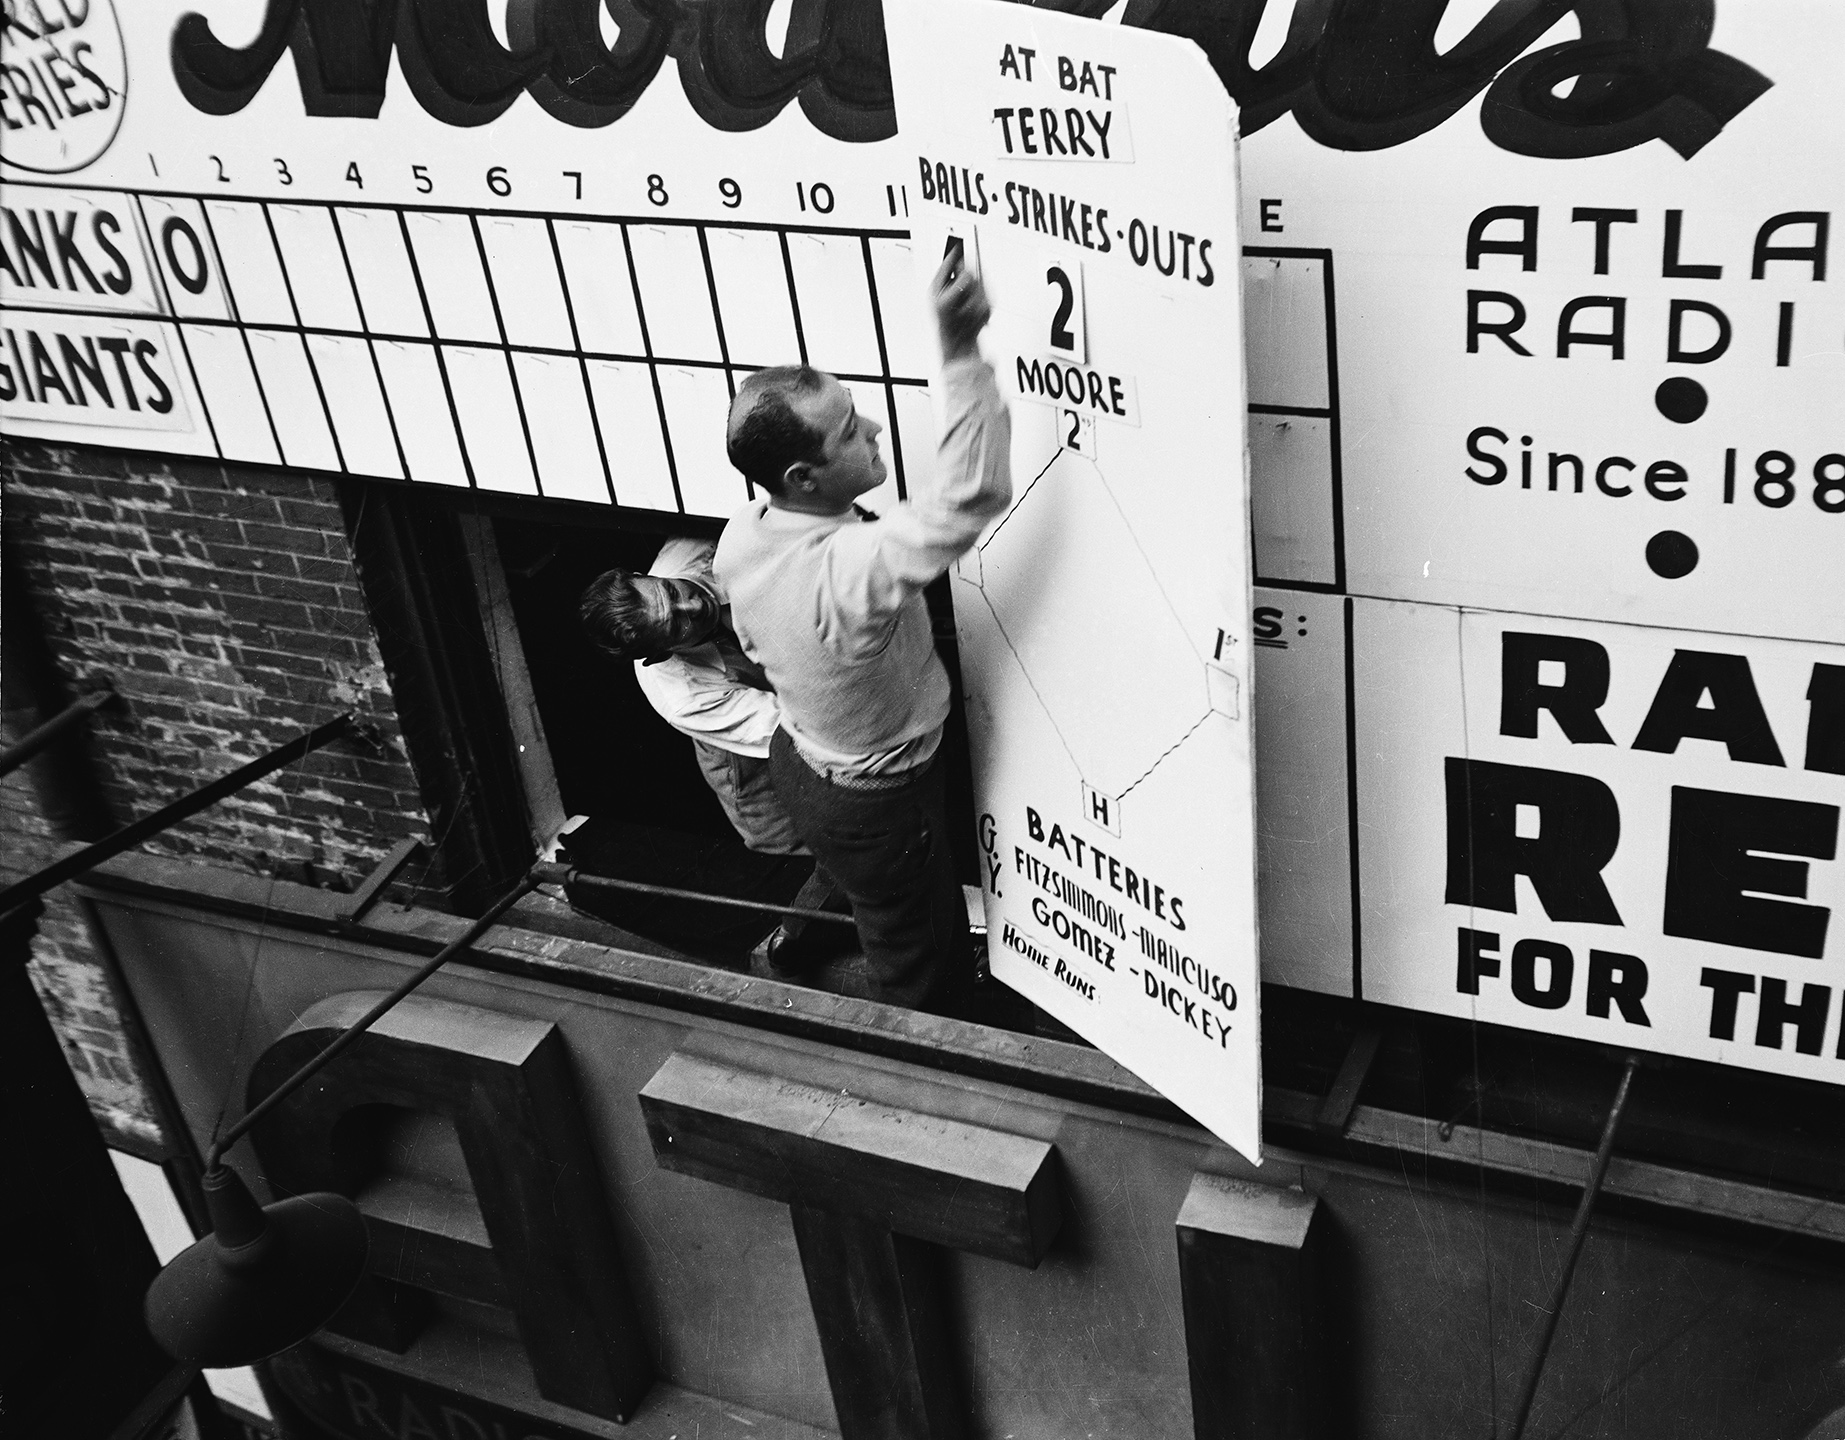 World Series announcement board (Yankees vs. Giants), Radio Row, Cortlandt Street, 1936. WPA Federal Writers' Project, NYC Municipal Archives.